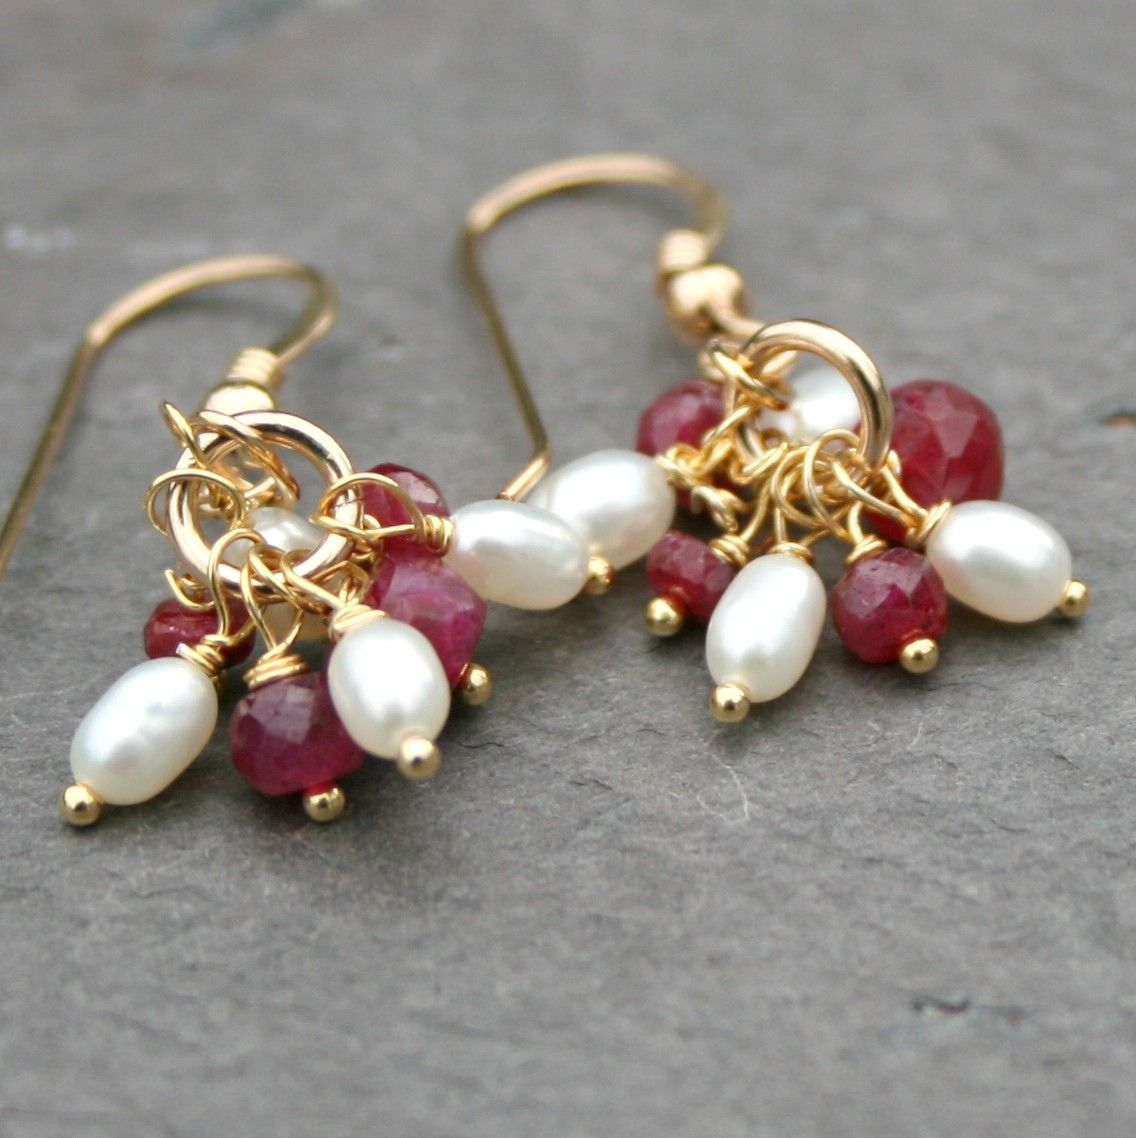 Ruby FW Pearl Cluster Earrings 14k Gold Fill by Maggie McMane Designs. $38.00, via Etsy.